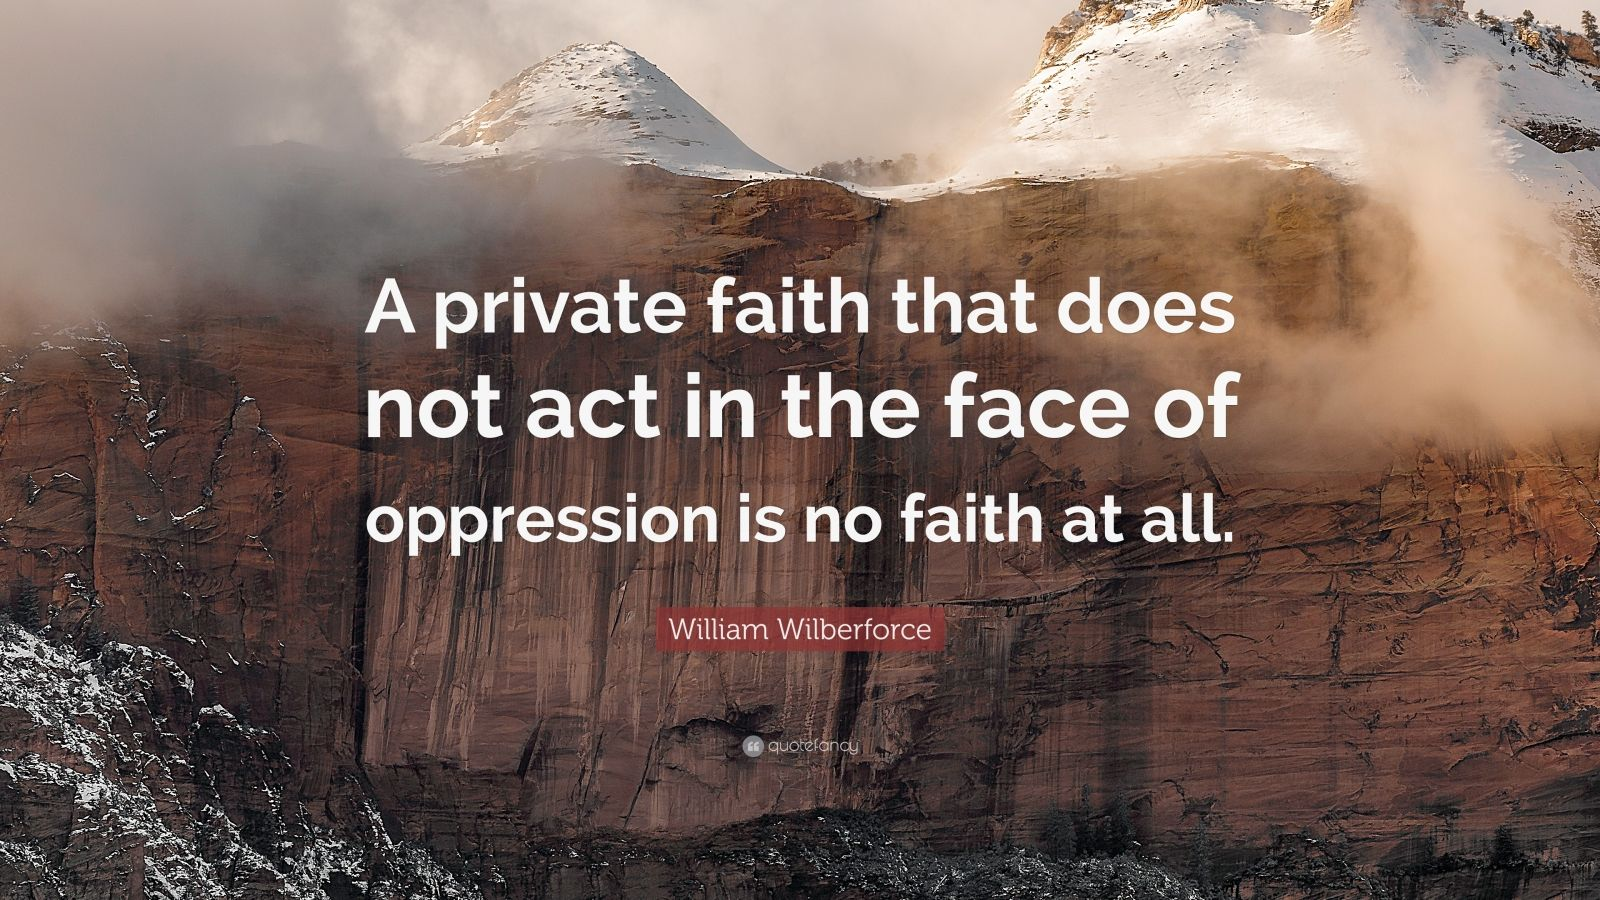 """William Wilberforce Quote: """"A private faith that does not act in the face of oppression is no faith at all."""""""